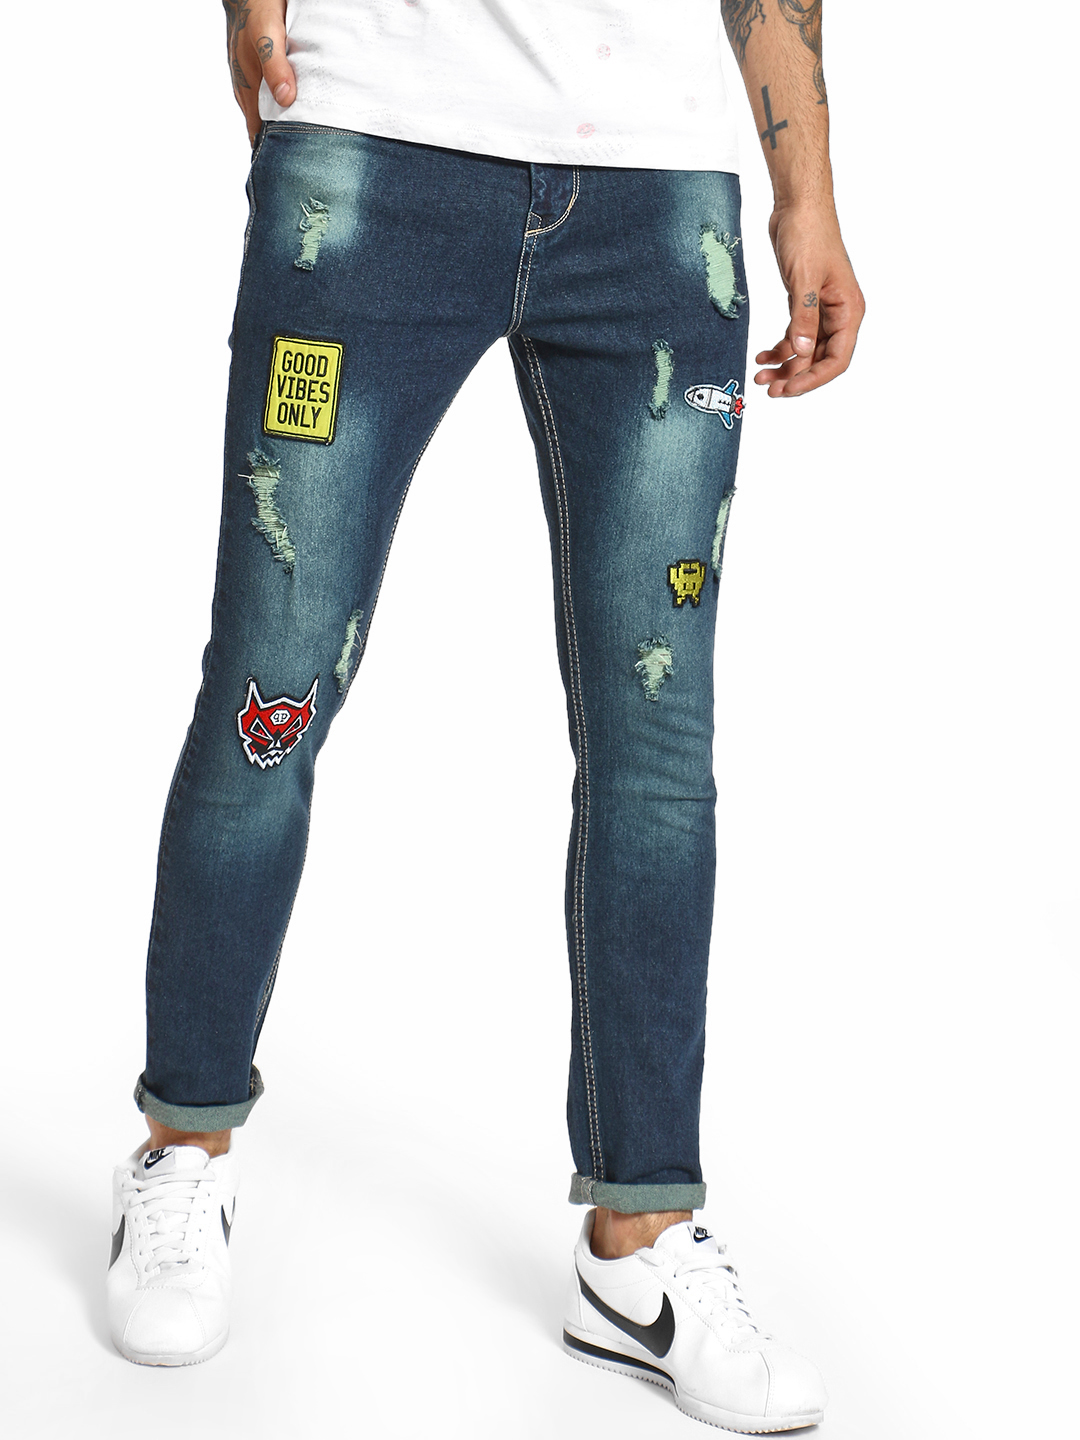 Deezeno Blue Embroidered Badge Distressed Skinny Jeans 1